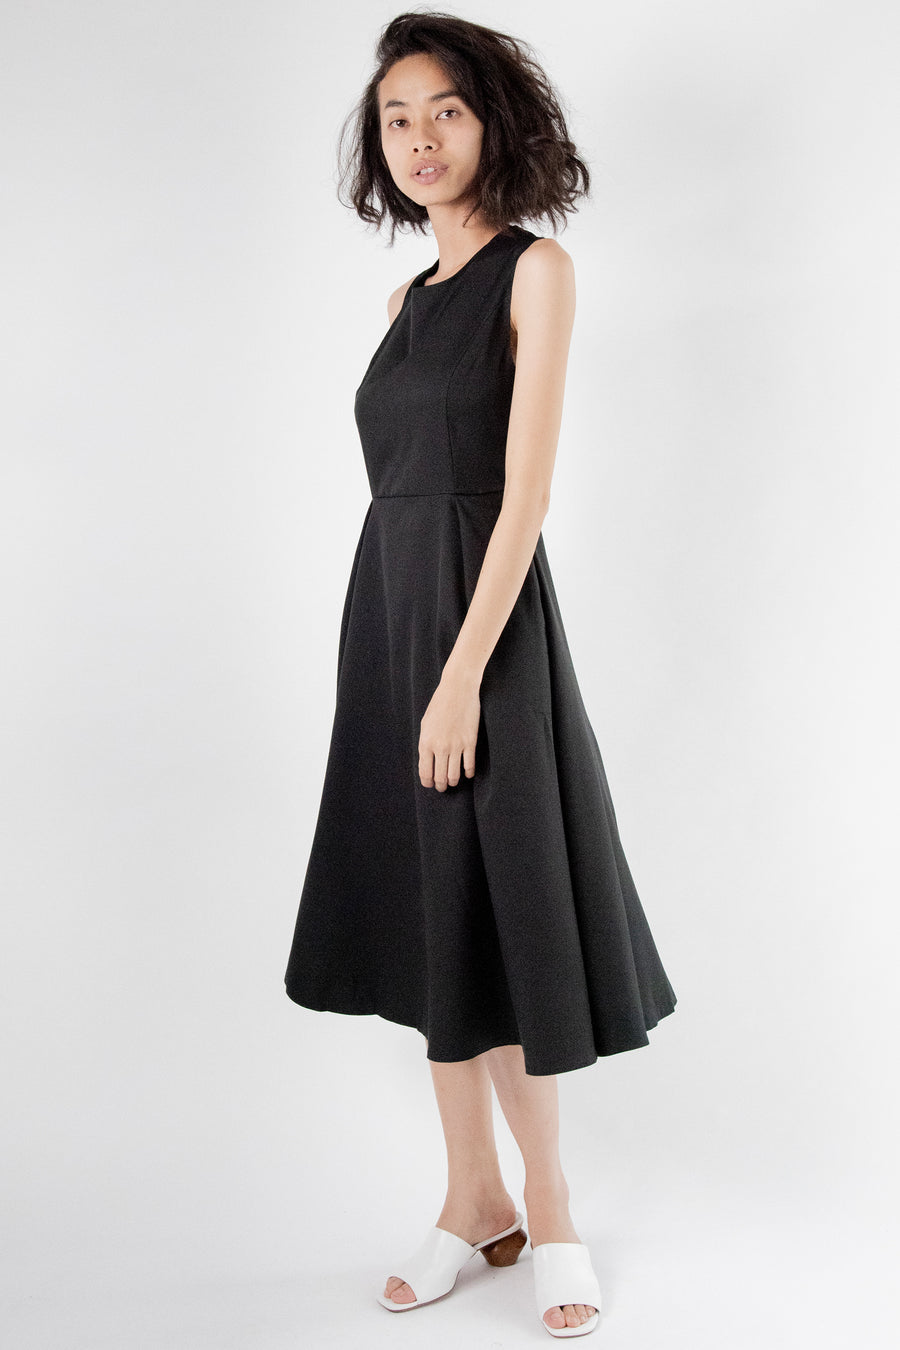 Black Evening Dress Anniston